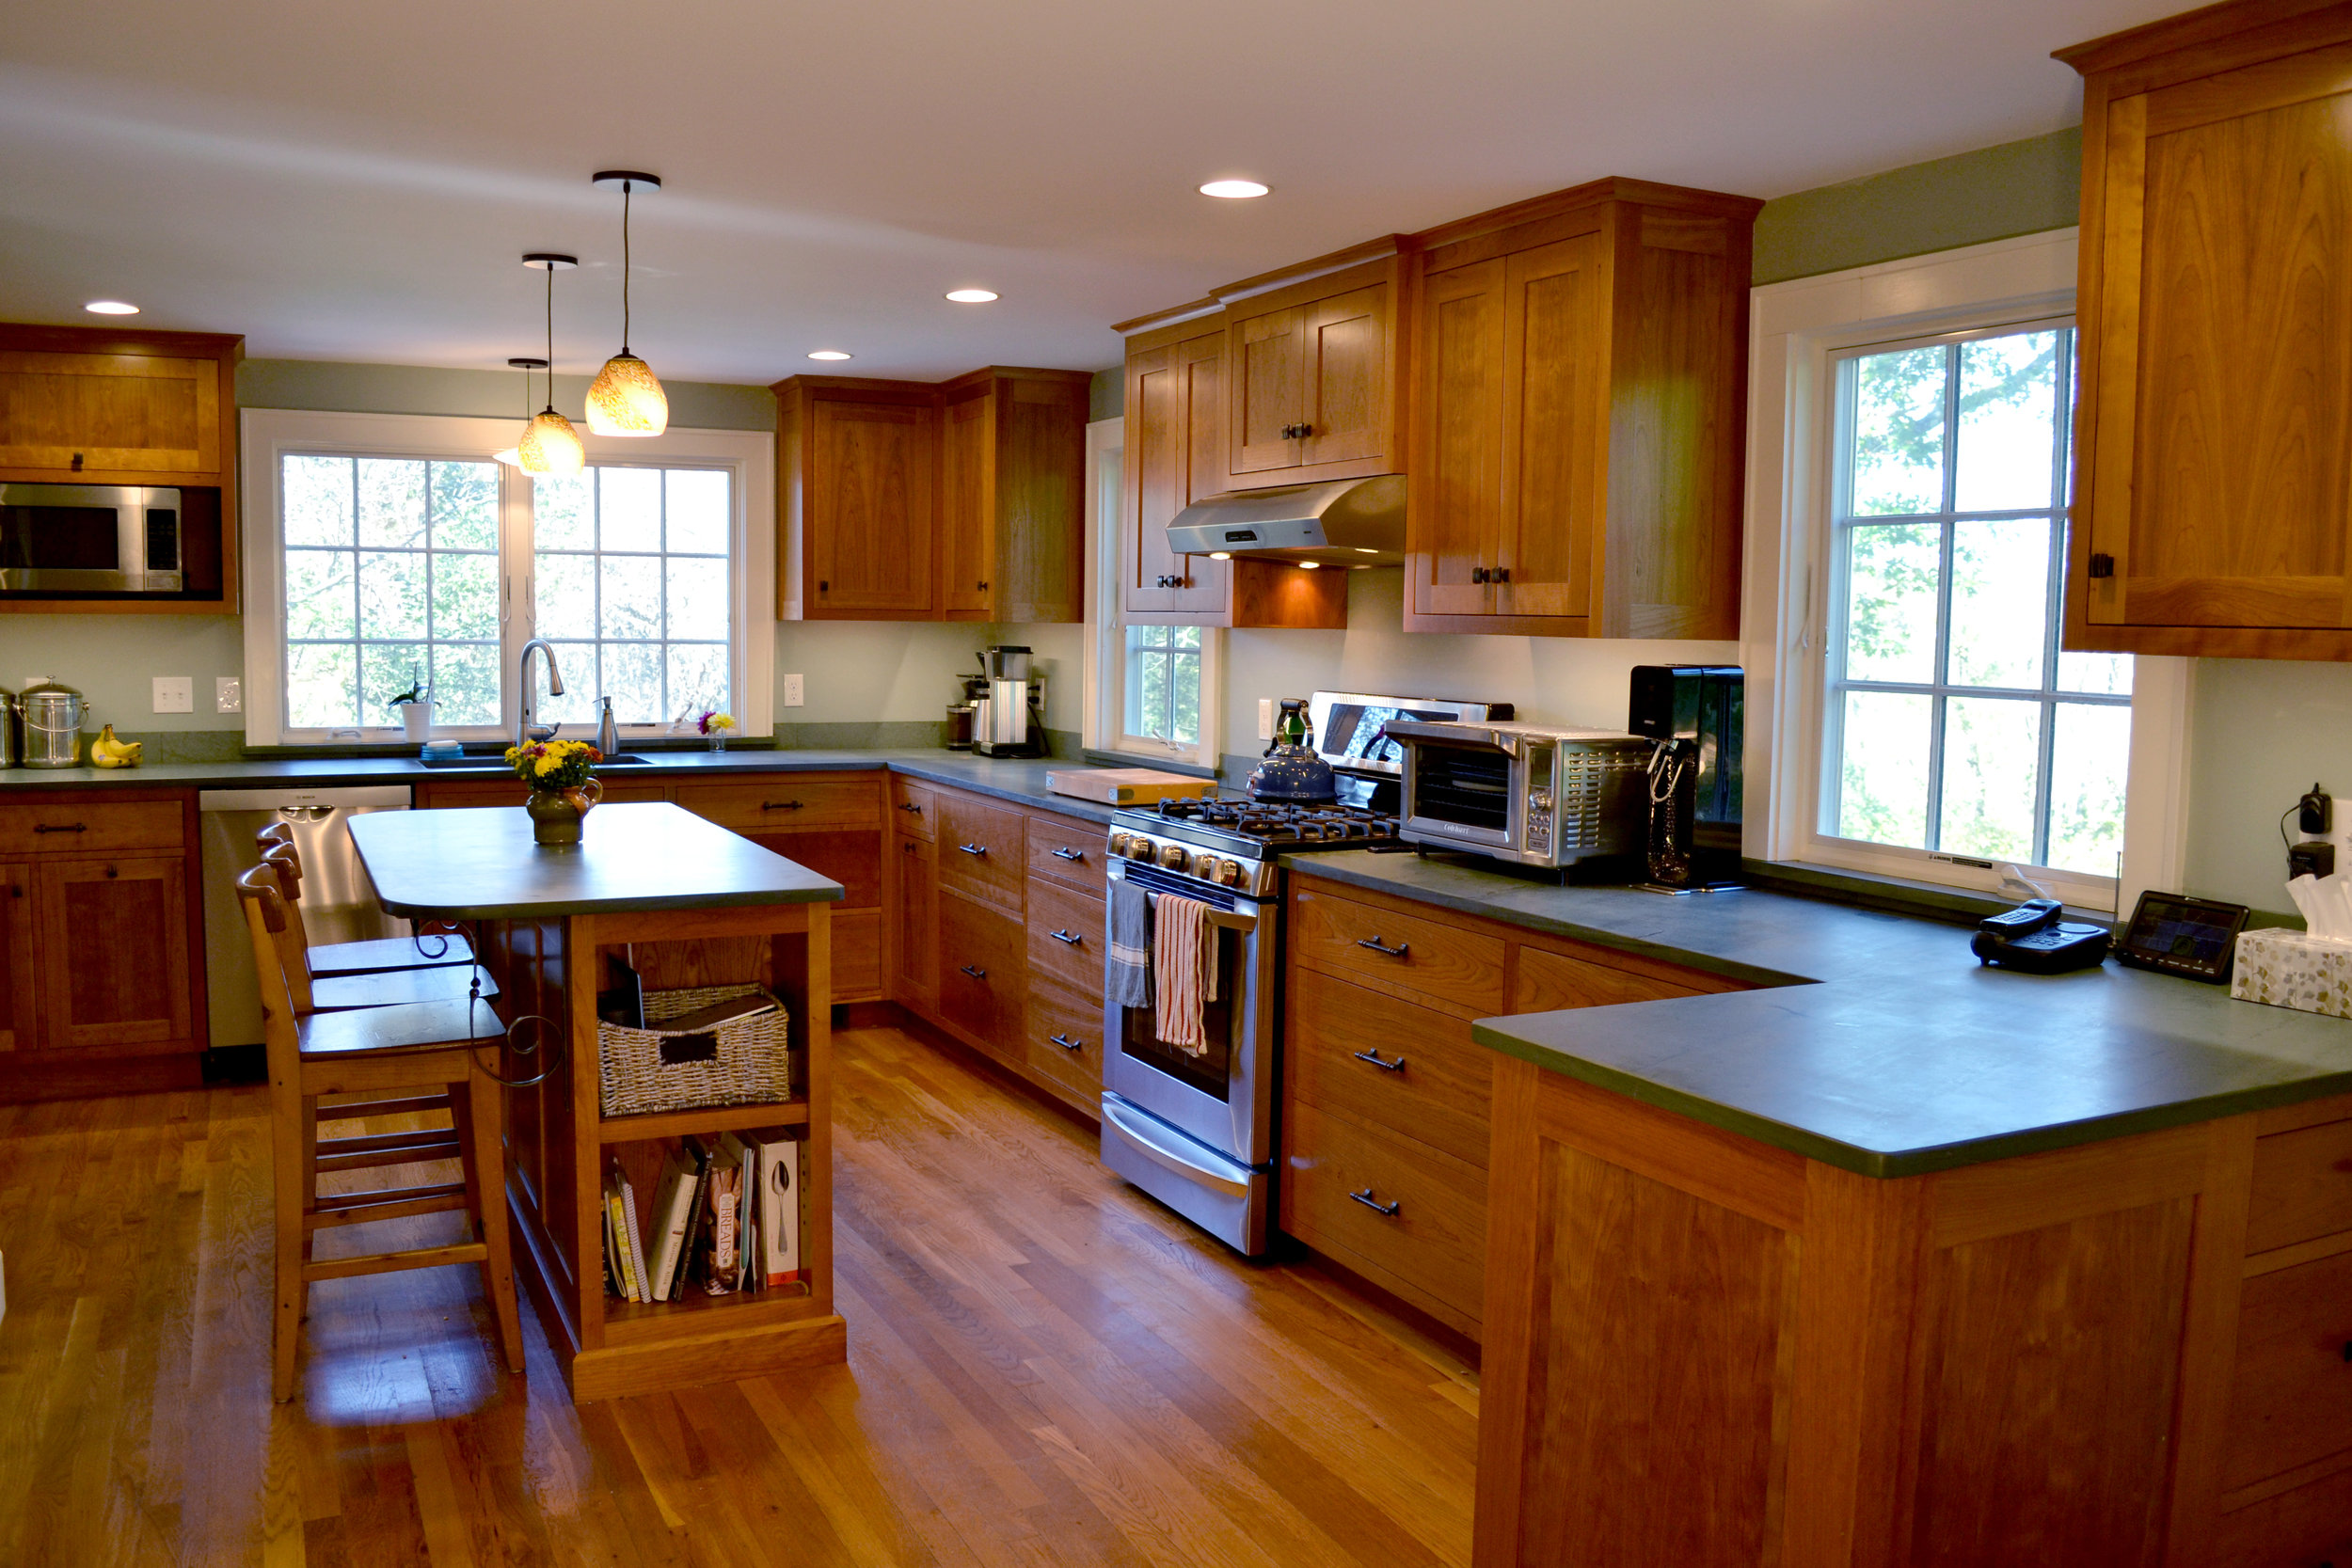 Kitchen Construction | Cherry Cabinets | Dickinson Architects | Acton Massachusetts